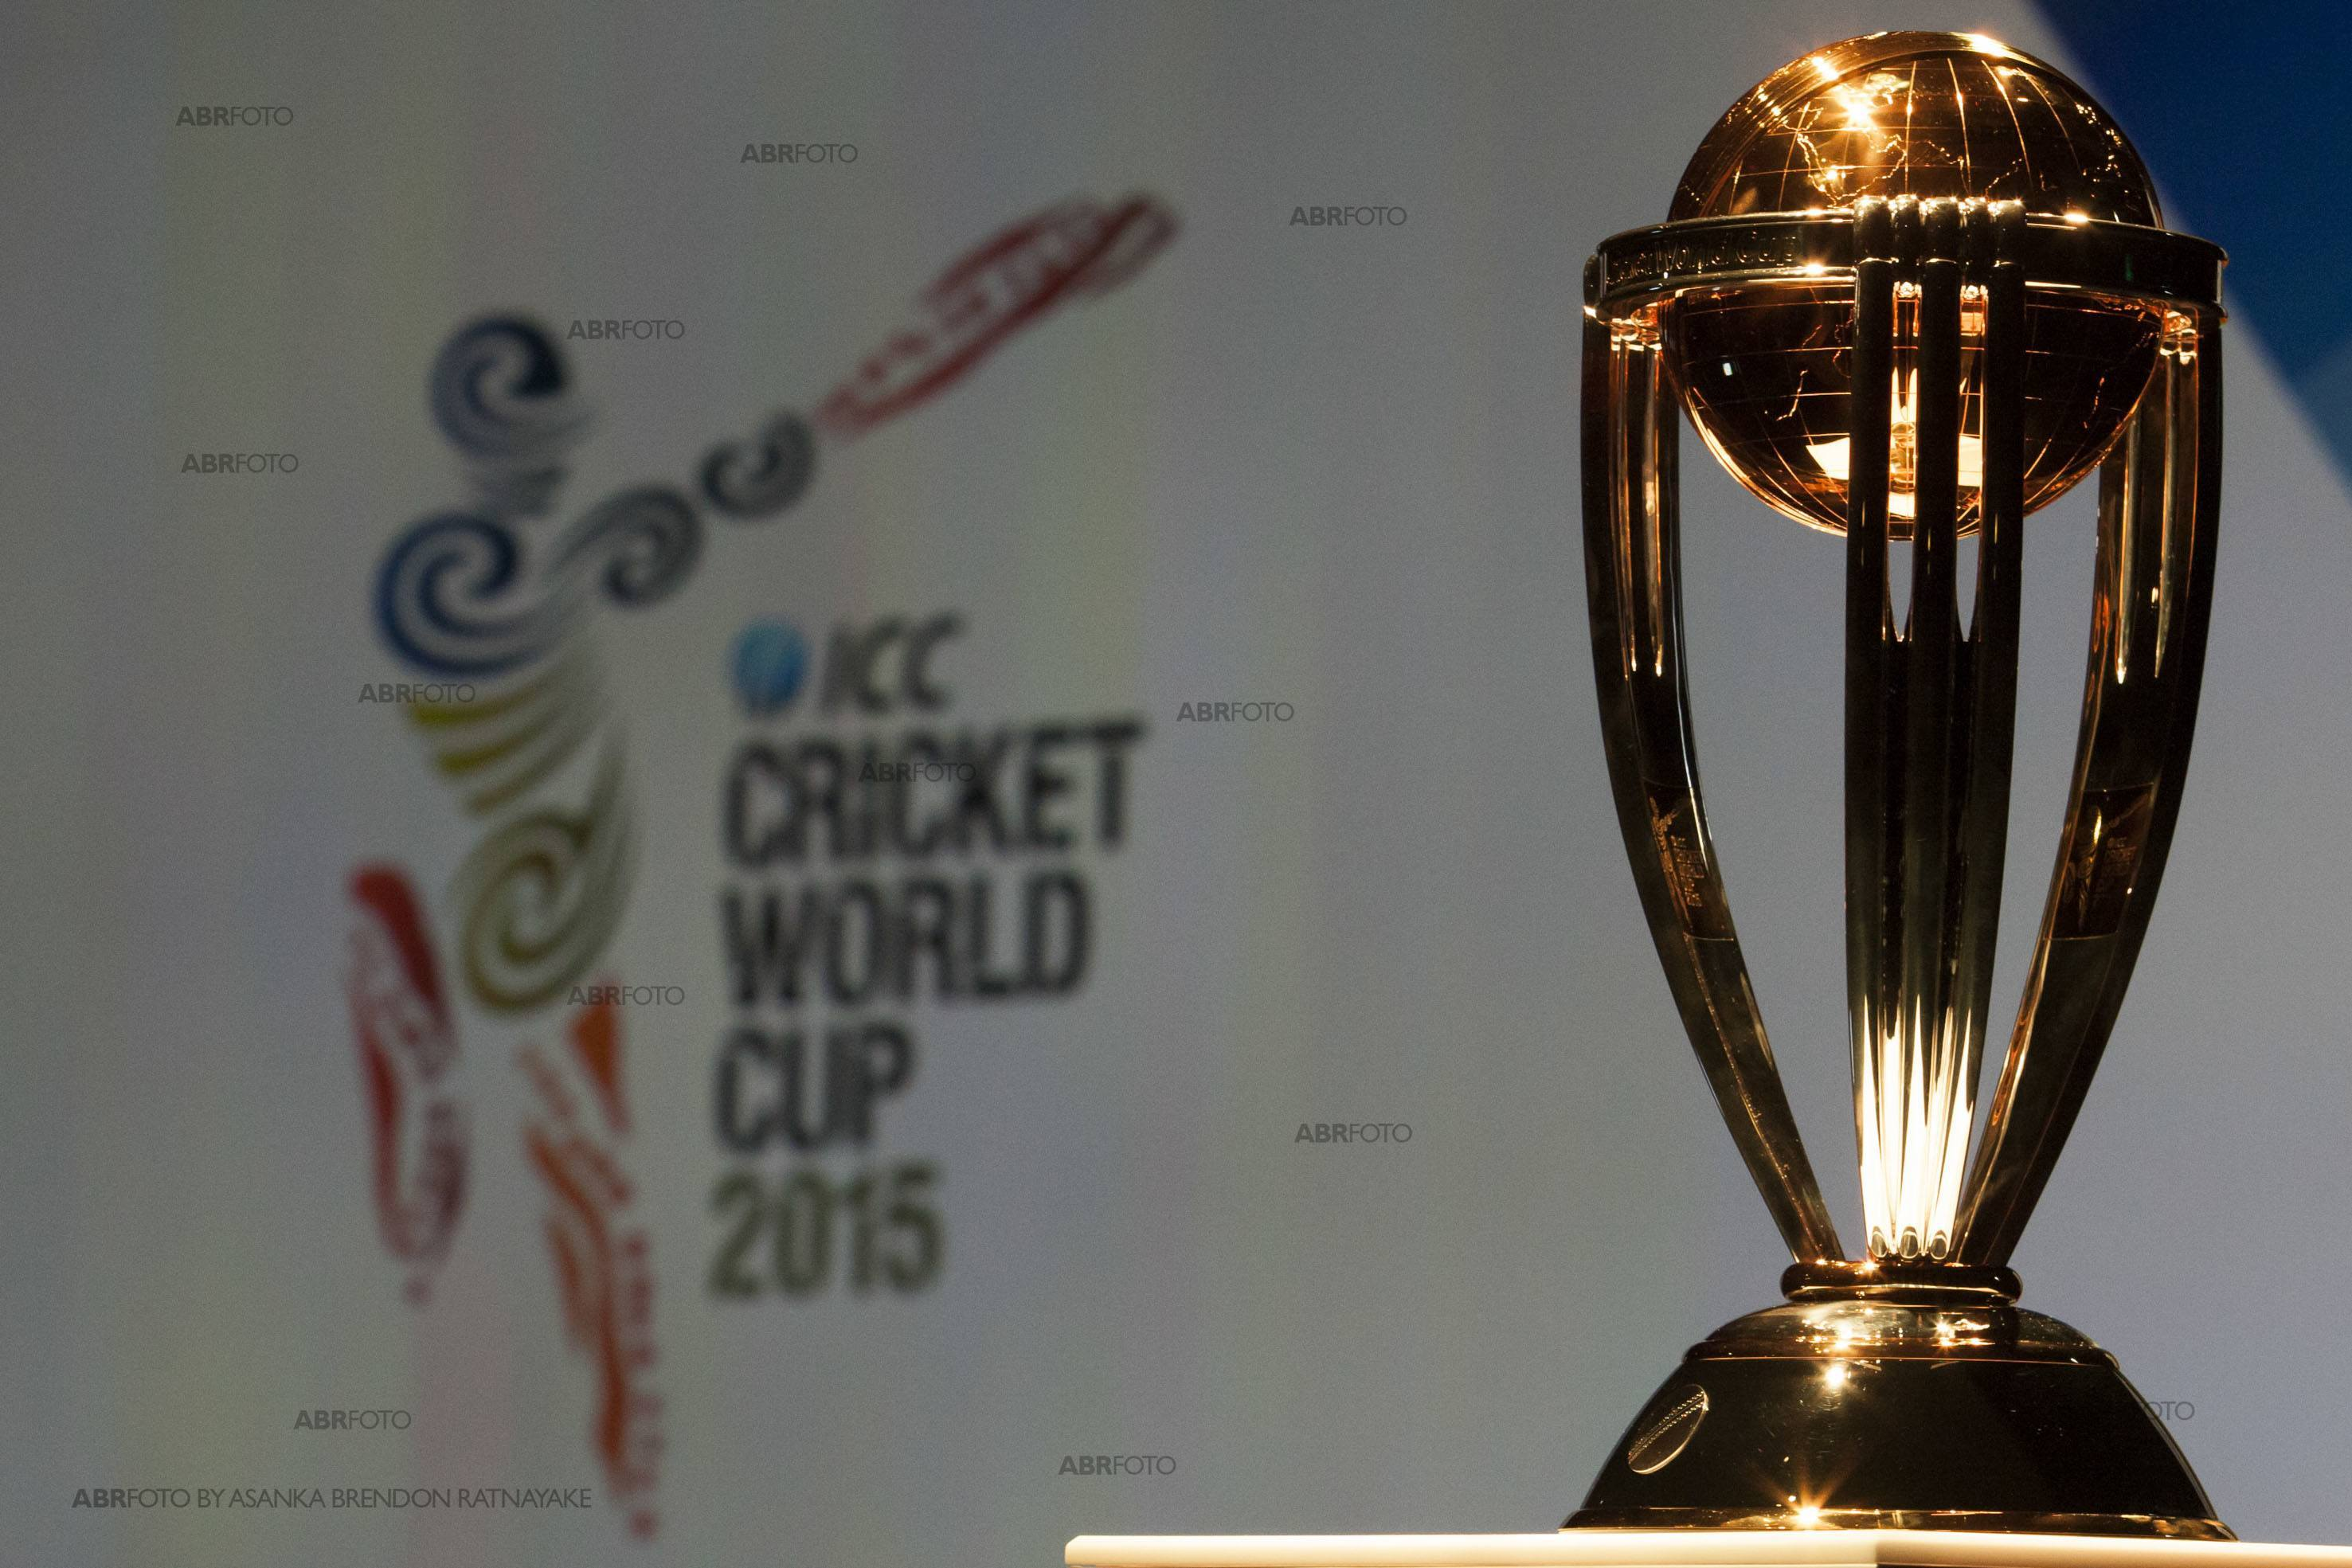 The Cricket World Cup 2015 is about to kick off.